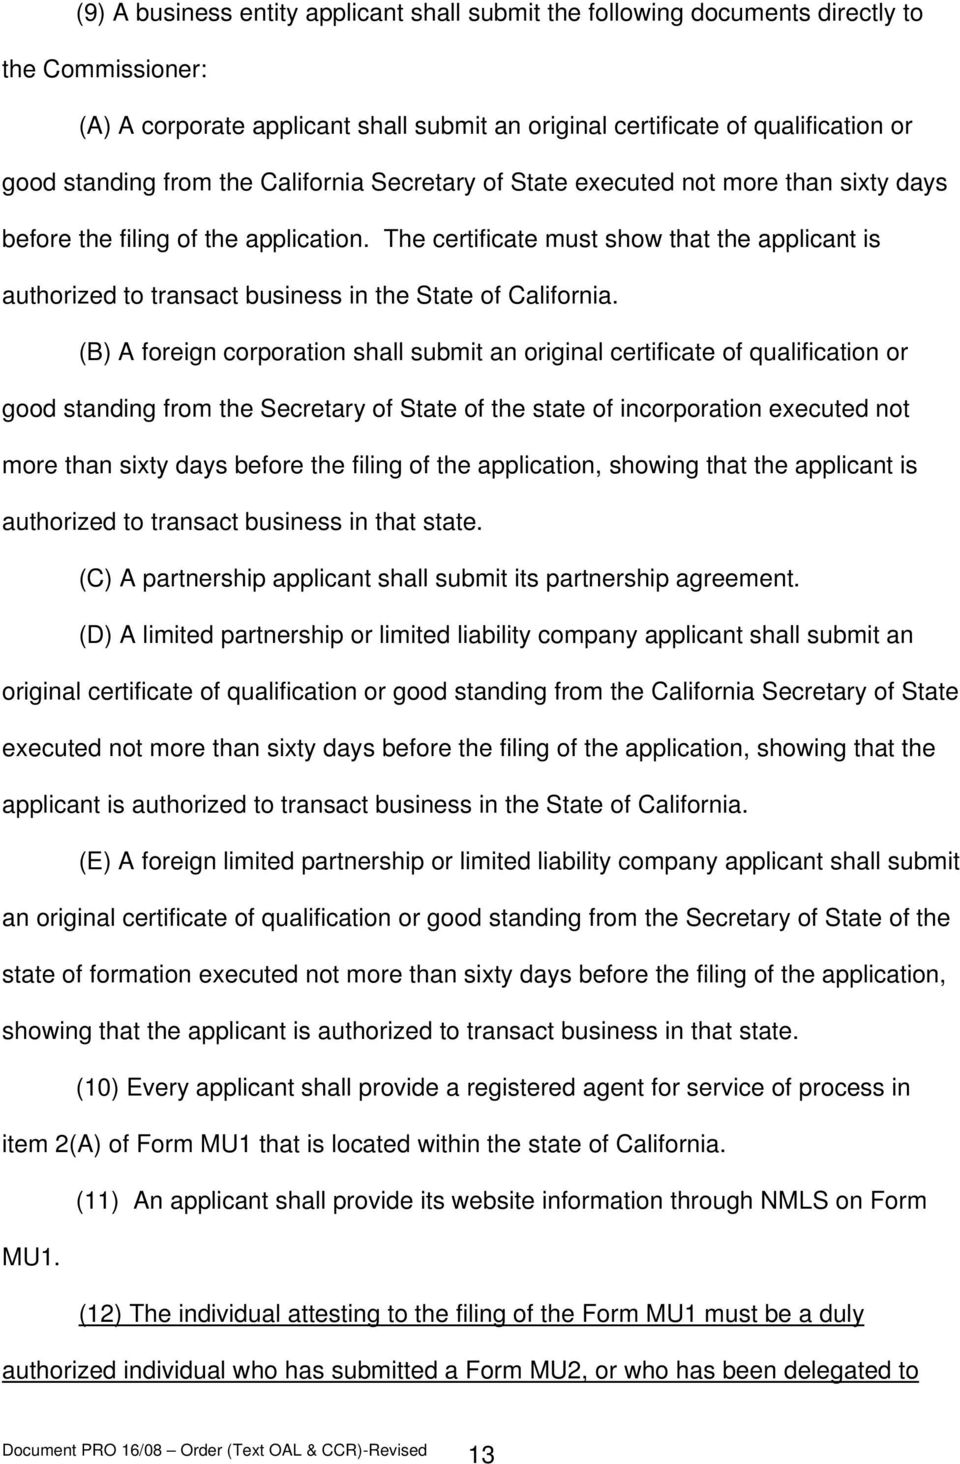 The certificate must show that the applicant is authorized to transact business in the State of California.